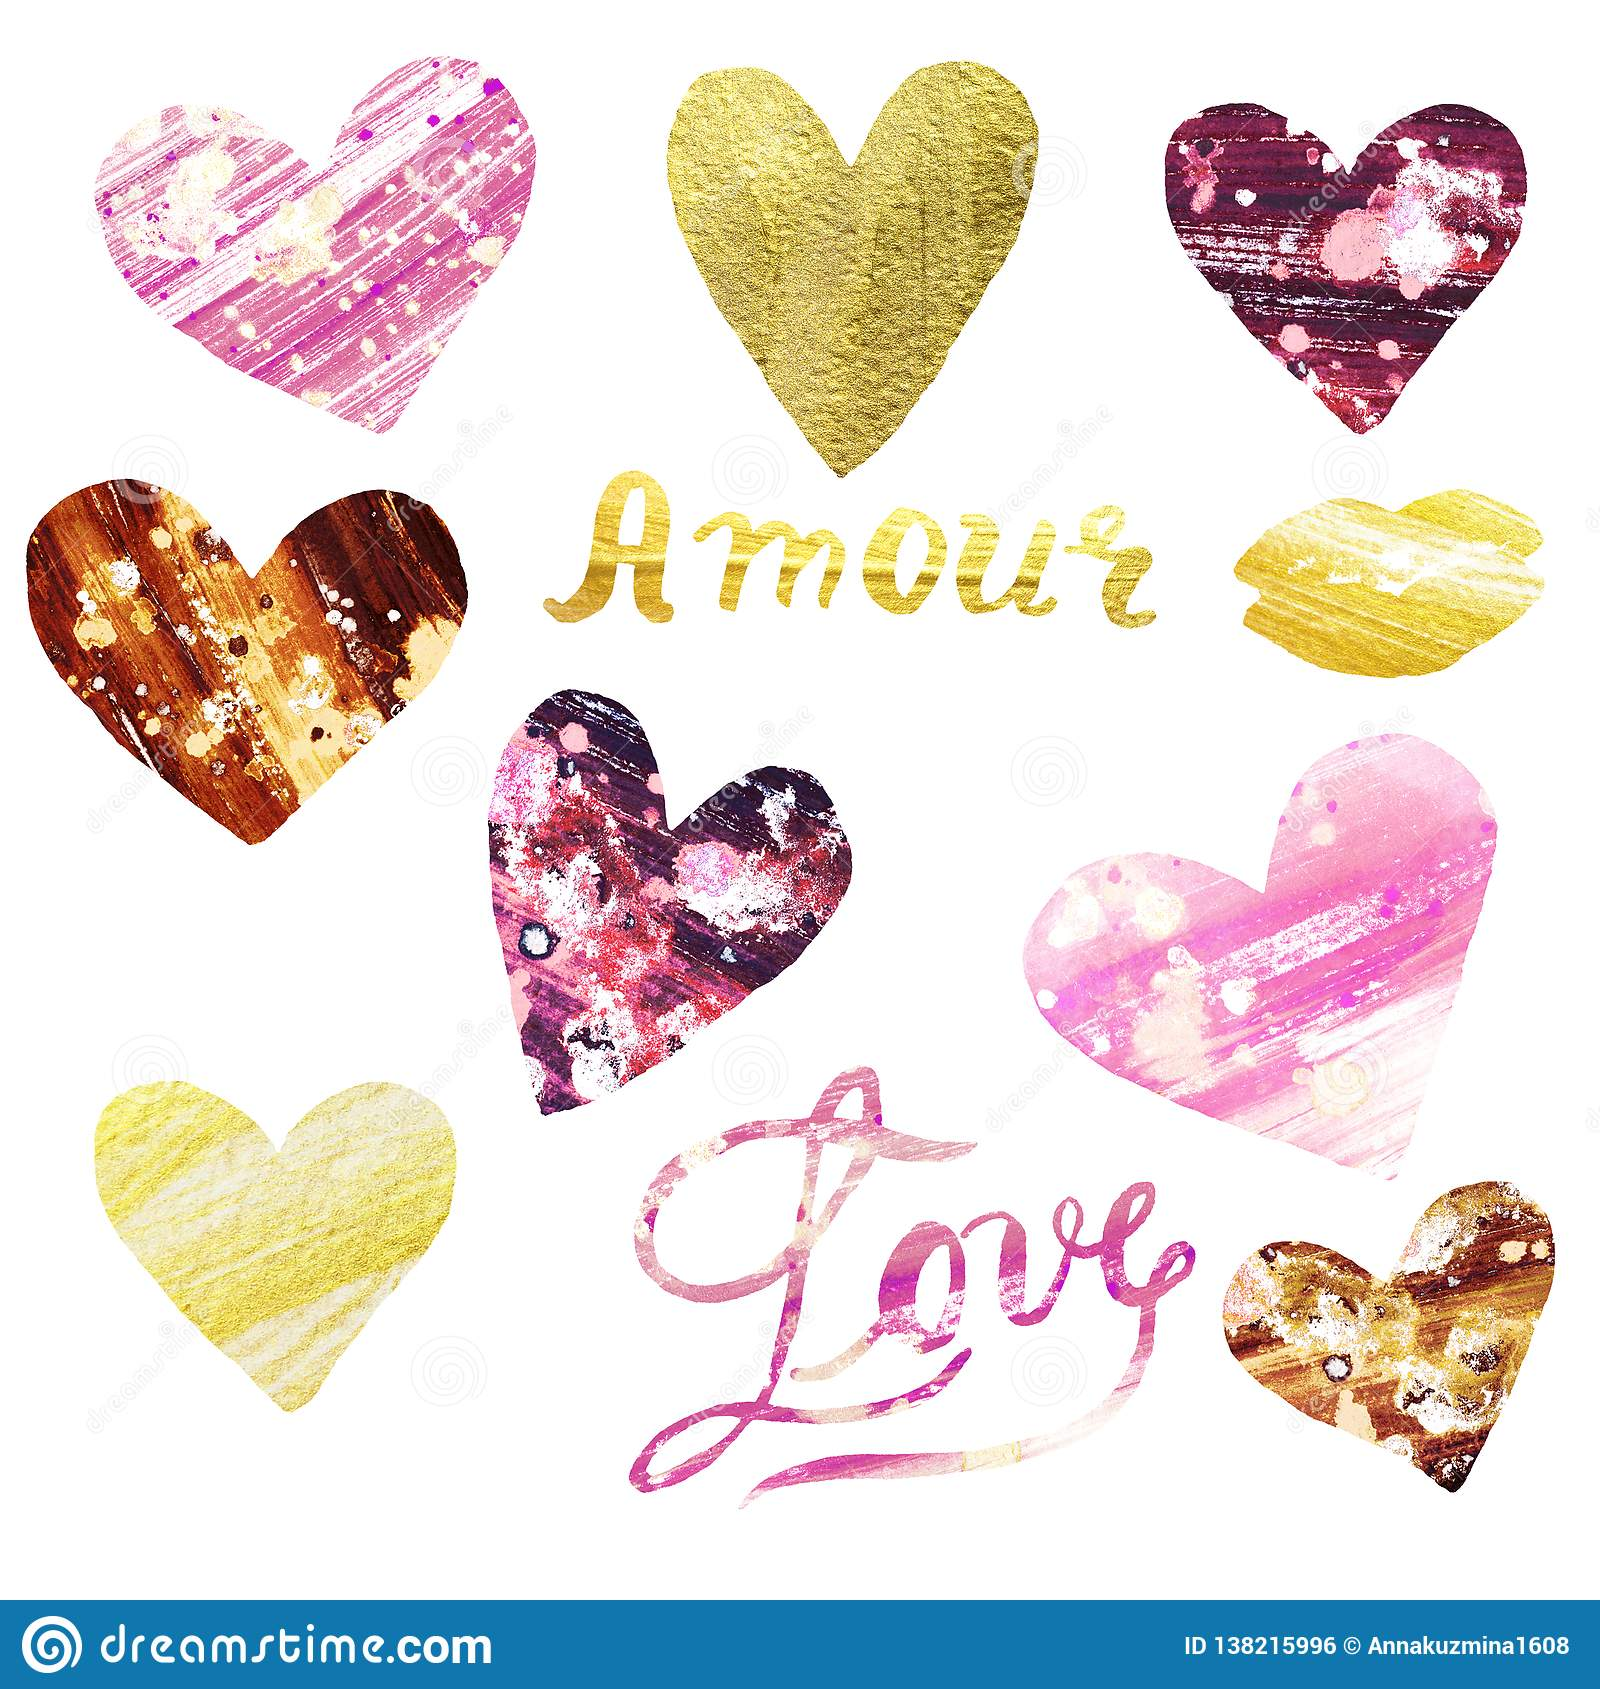 Watercolor set of hand painted shiny pink and gold hearts. Illustration of Love symbols for Valentines day